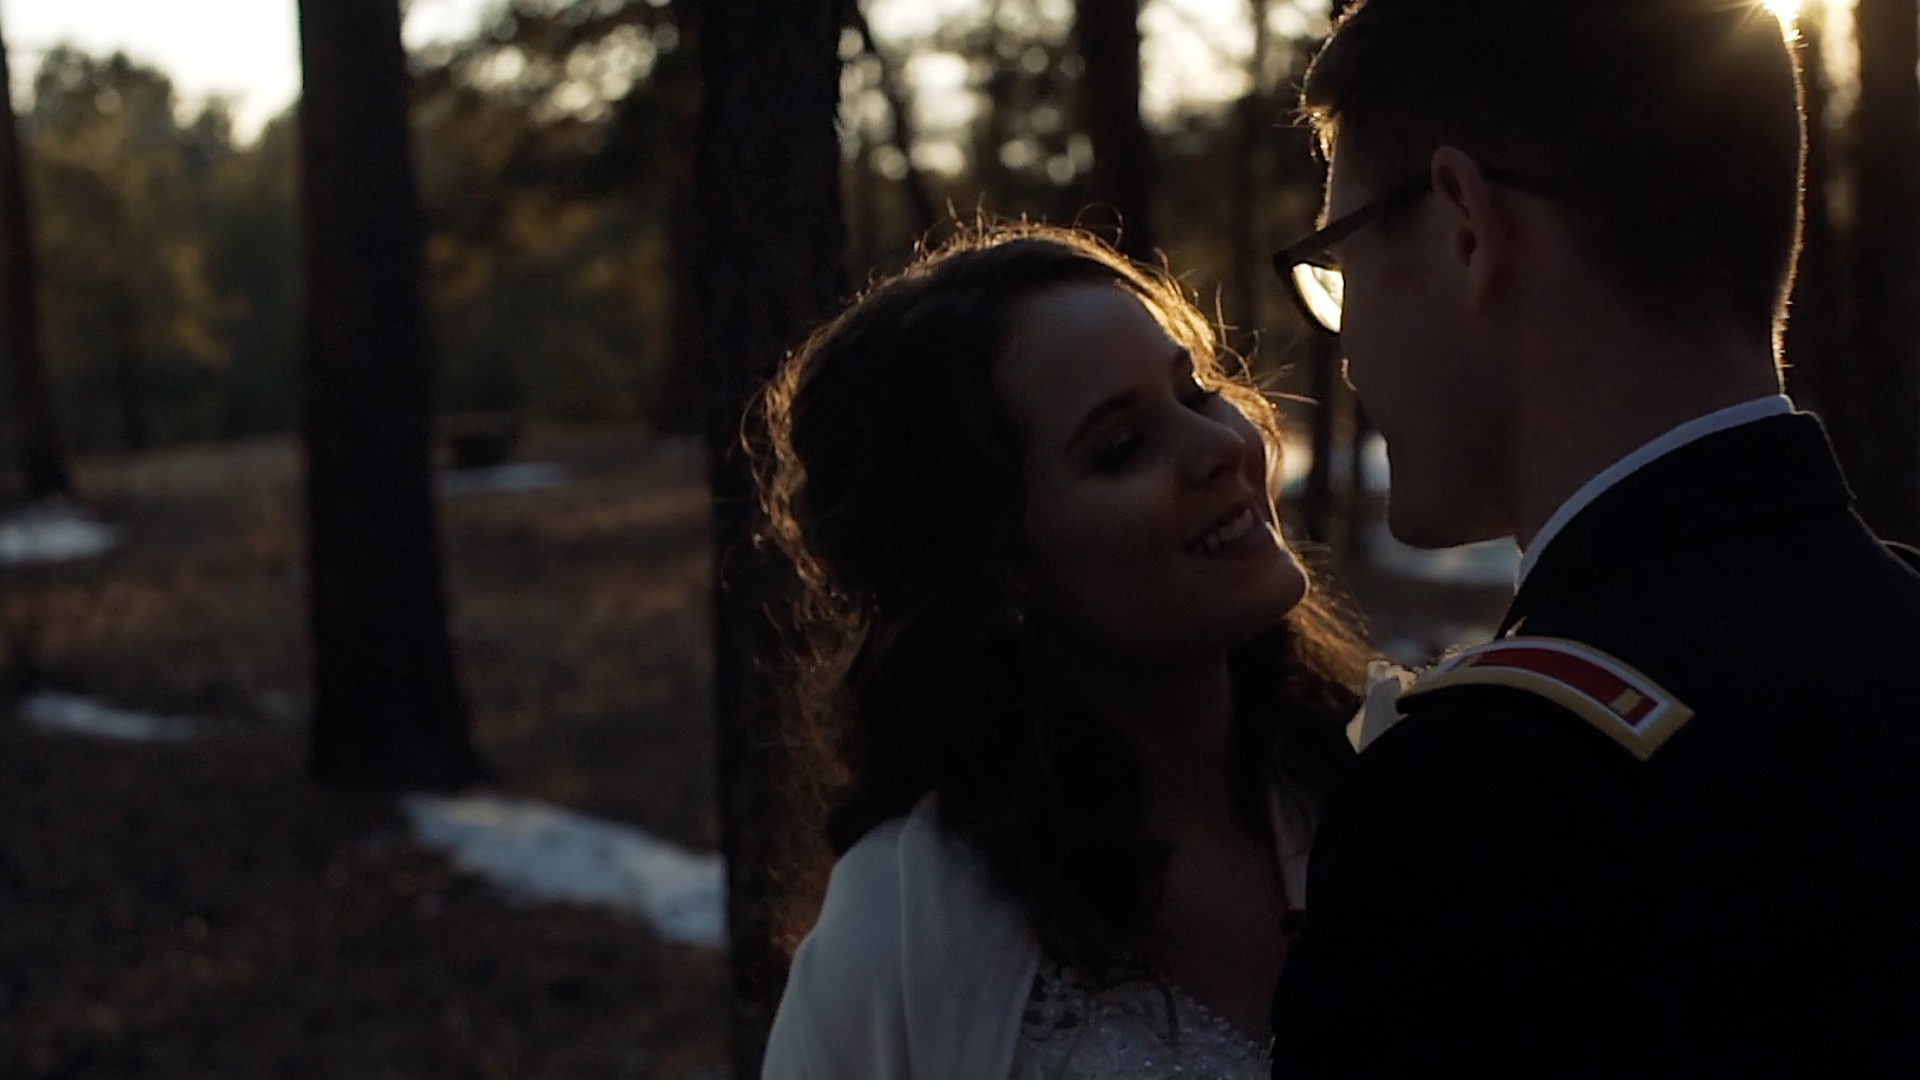 Brooke + Anthony | Colorado Springs, Colorado | La Foret Conference & Retreat